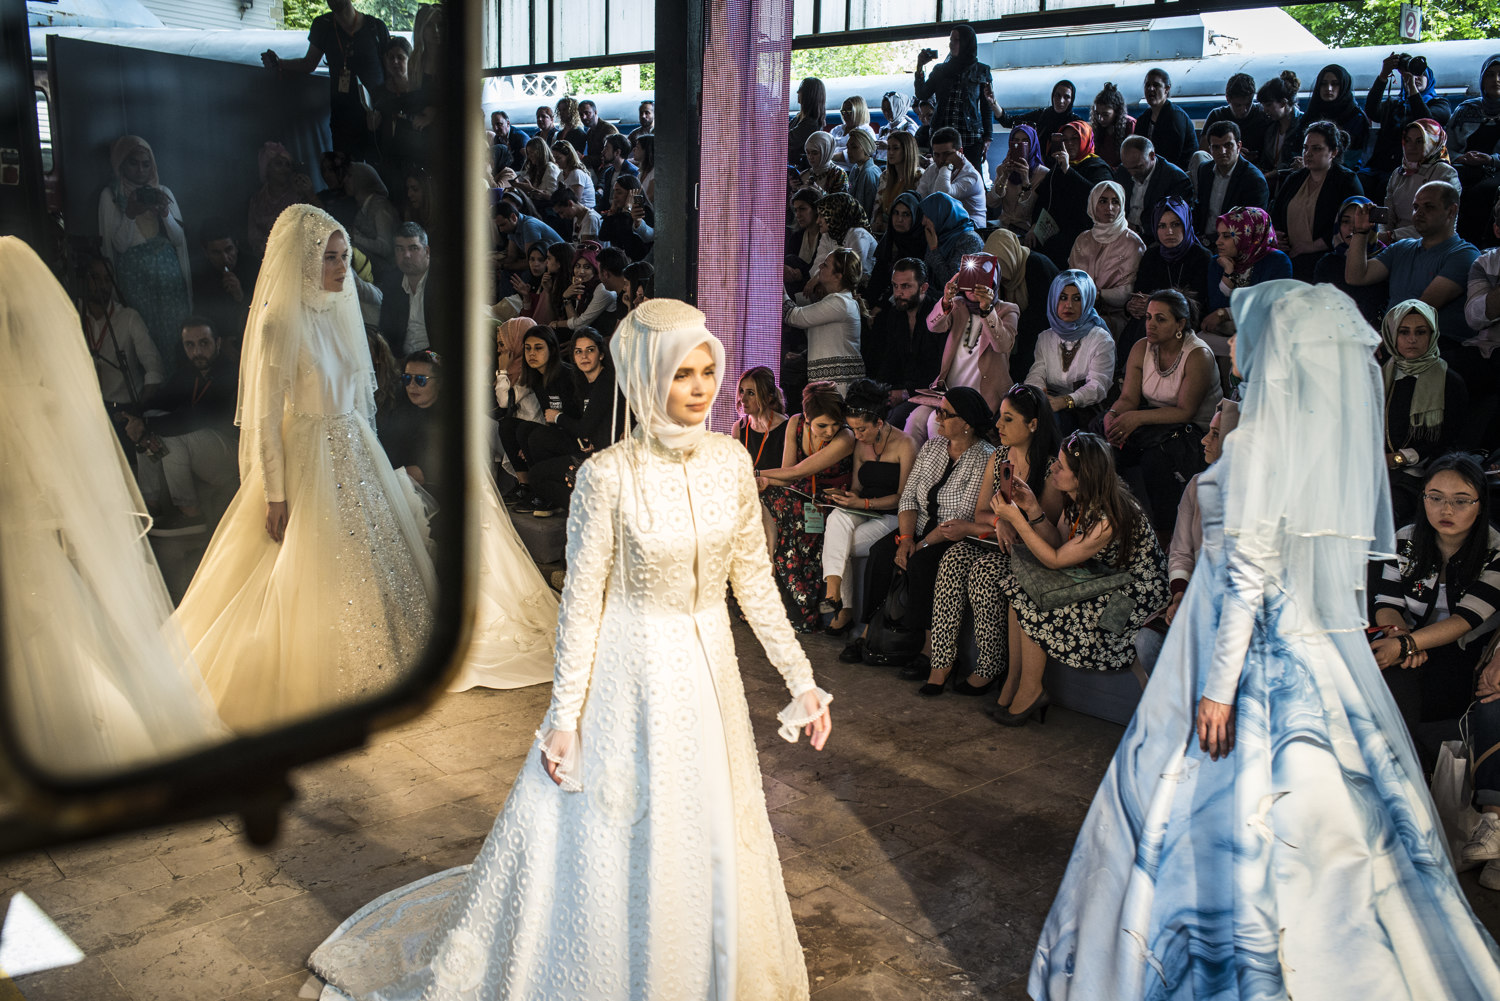 Runway shows at the first day of IMFW. Images from the first day of Modanisa's Istanbul Modest Fashion Week which takes place at Haydarpasa train station in Istanbul, Turkey on May 13th, 2016.